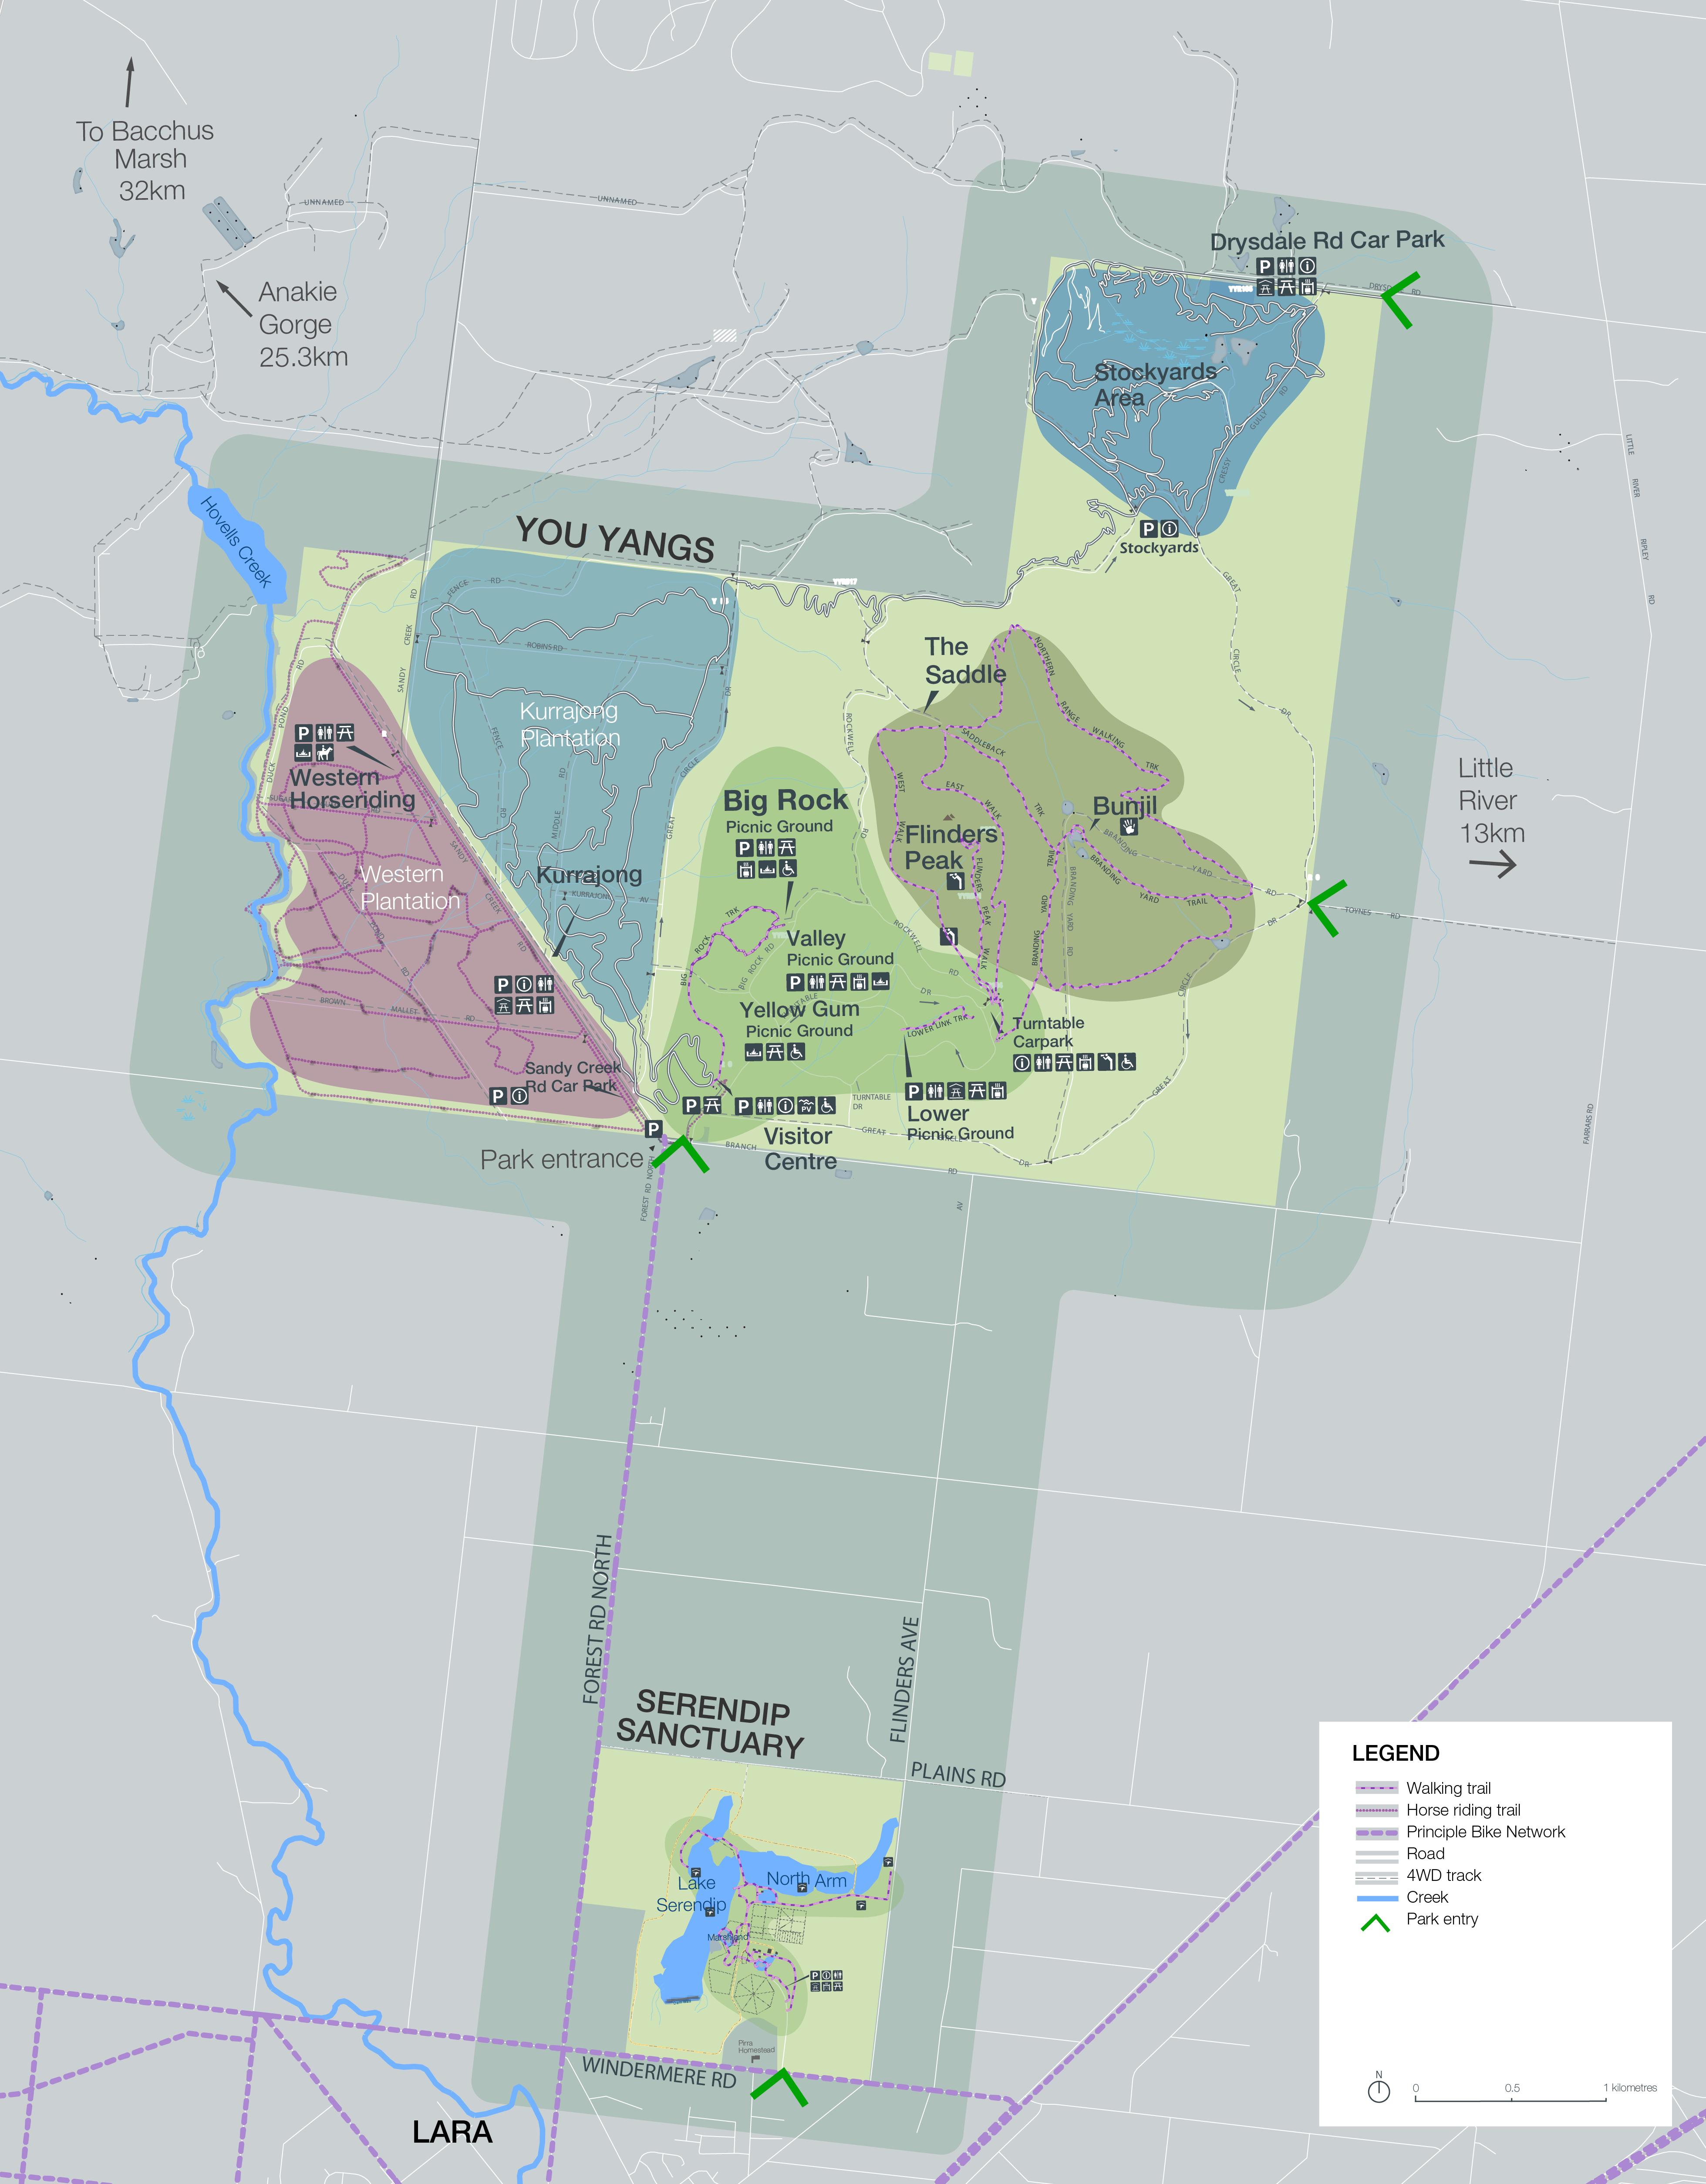 This is a map that includes the Western Plantation that is used for horse riding, in the center Big Rock, can be used for picnicking also has a visitor center, this also include Flinders Peak. The map shows the various entrances. In the north there is the